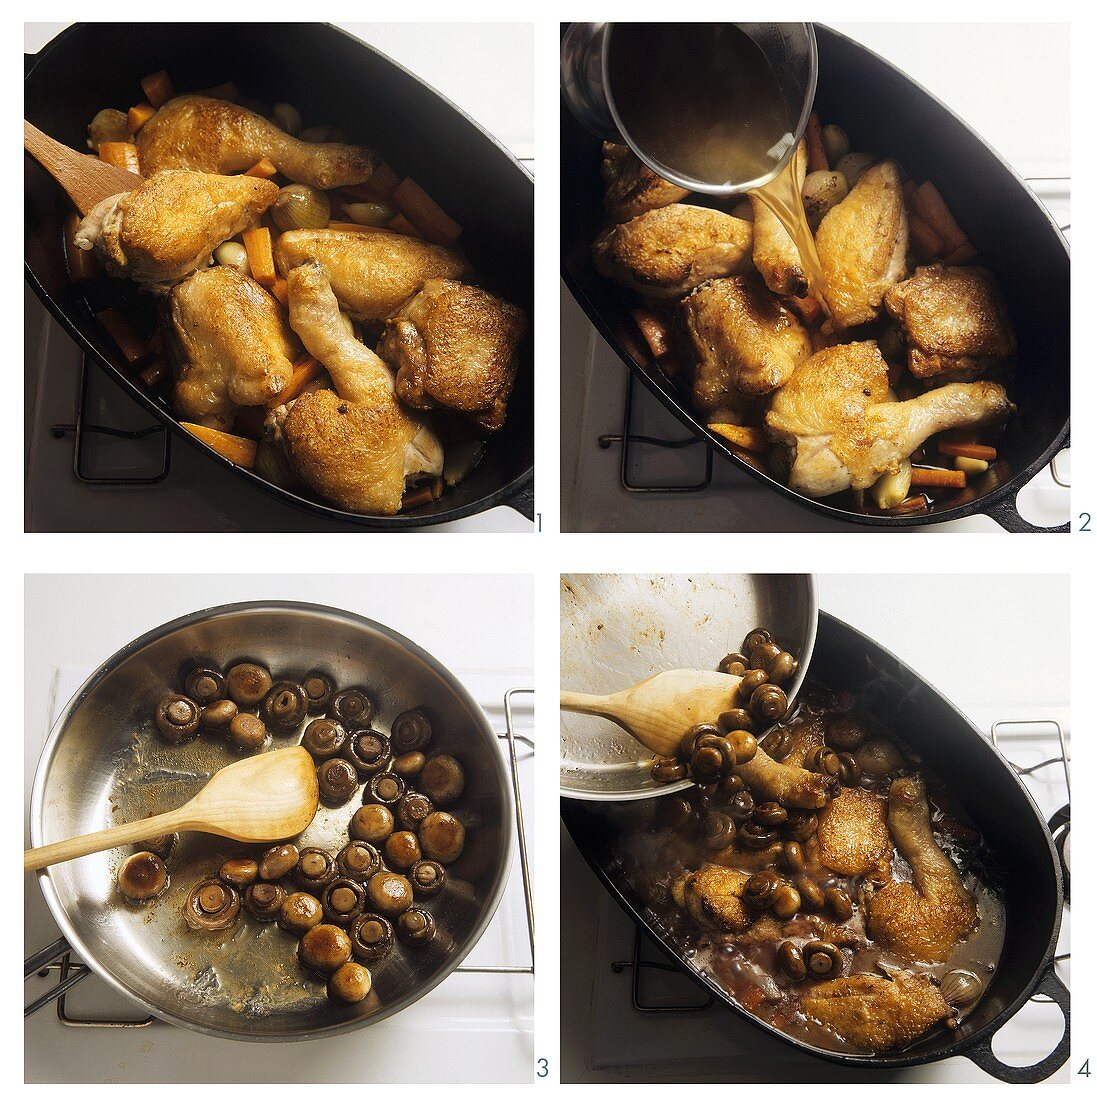 Braising poultry